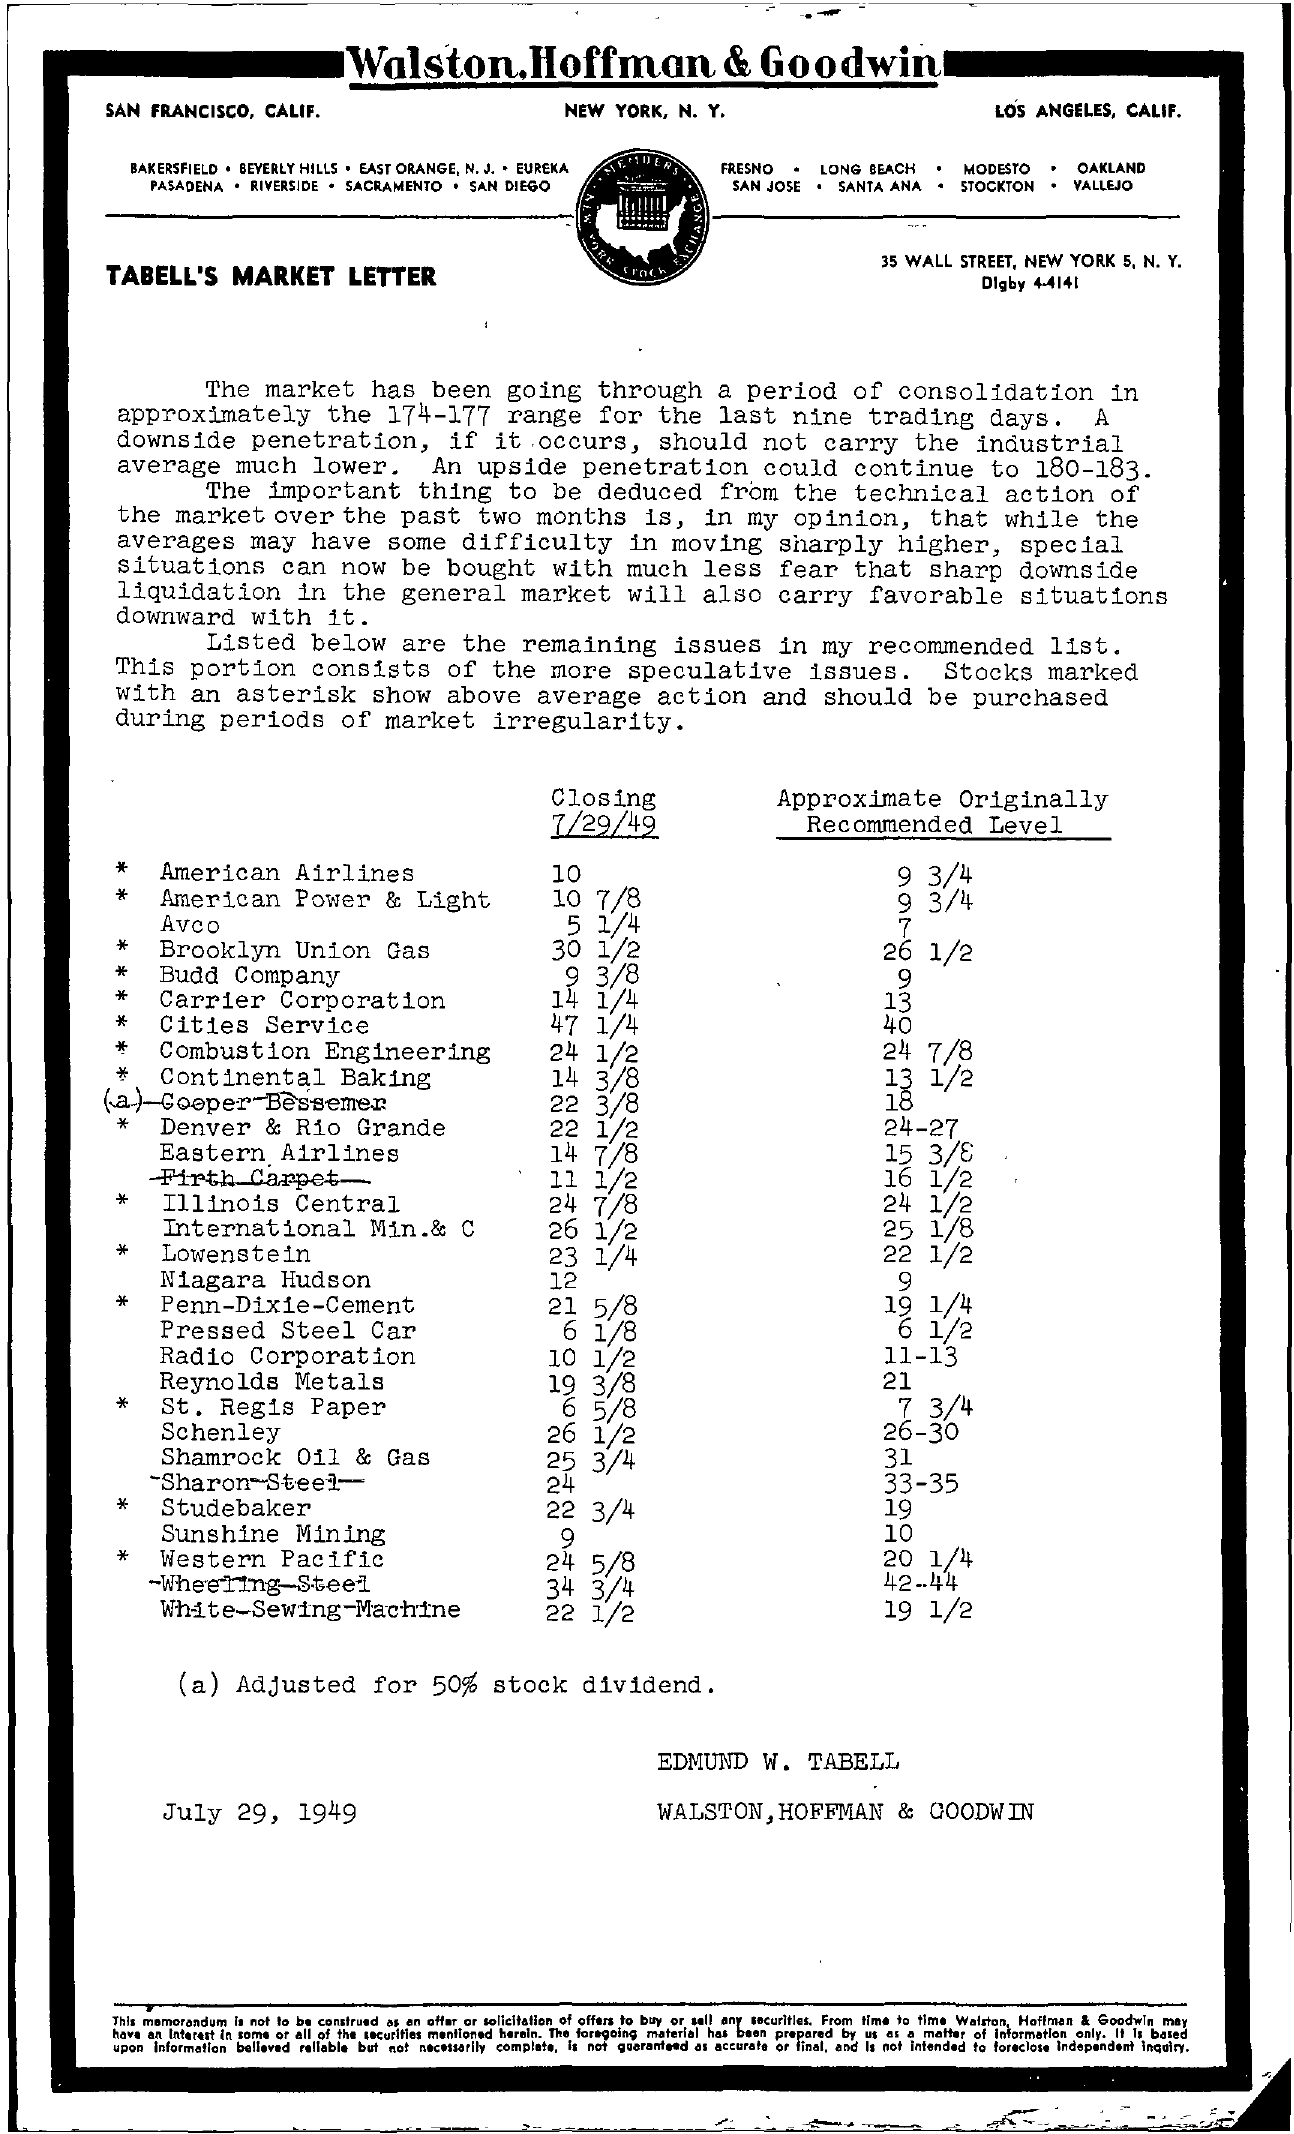 Tabell's Market Letter - July 29, 1949